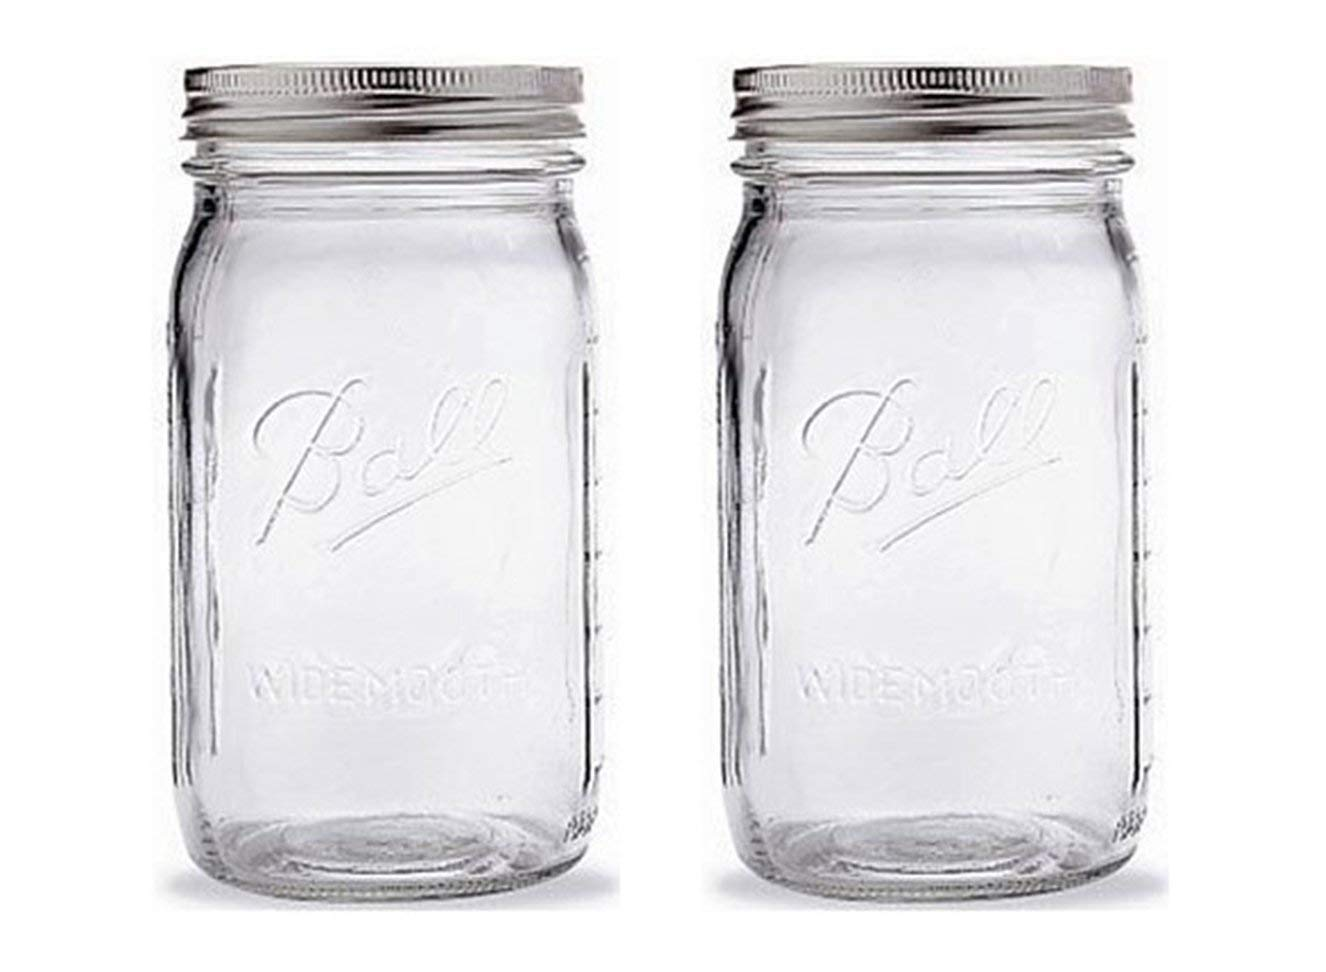 Ball Mason Jar-32 oz. Clear Glass Ball Wide Mouth-Set of 2 by Ball (Image #1)